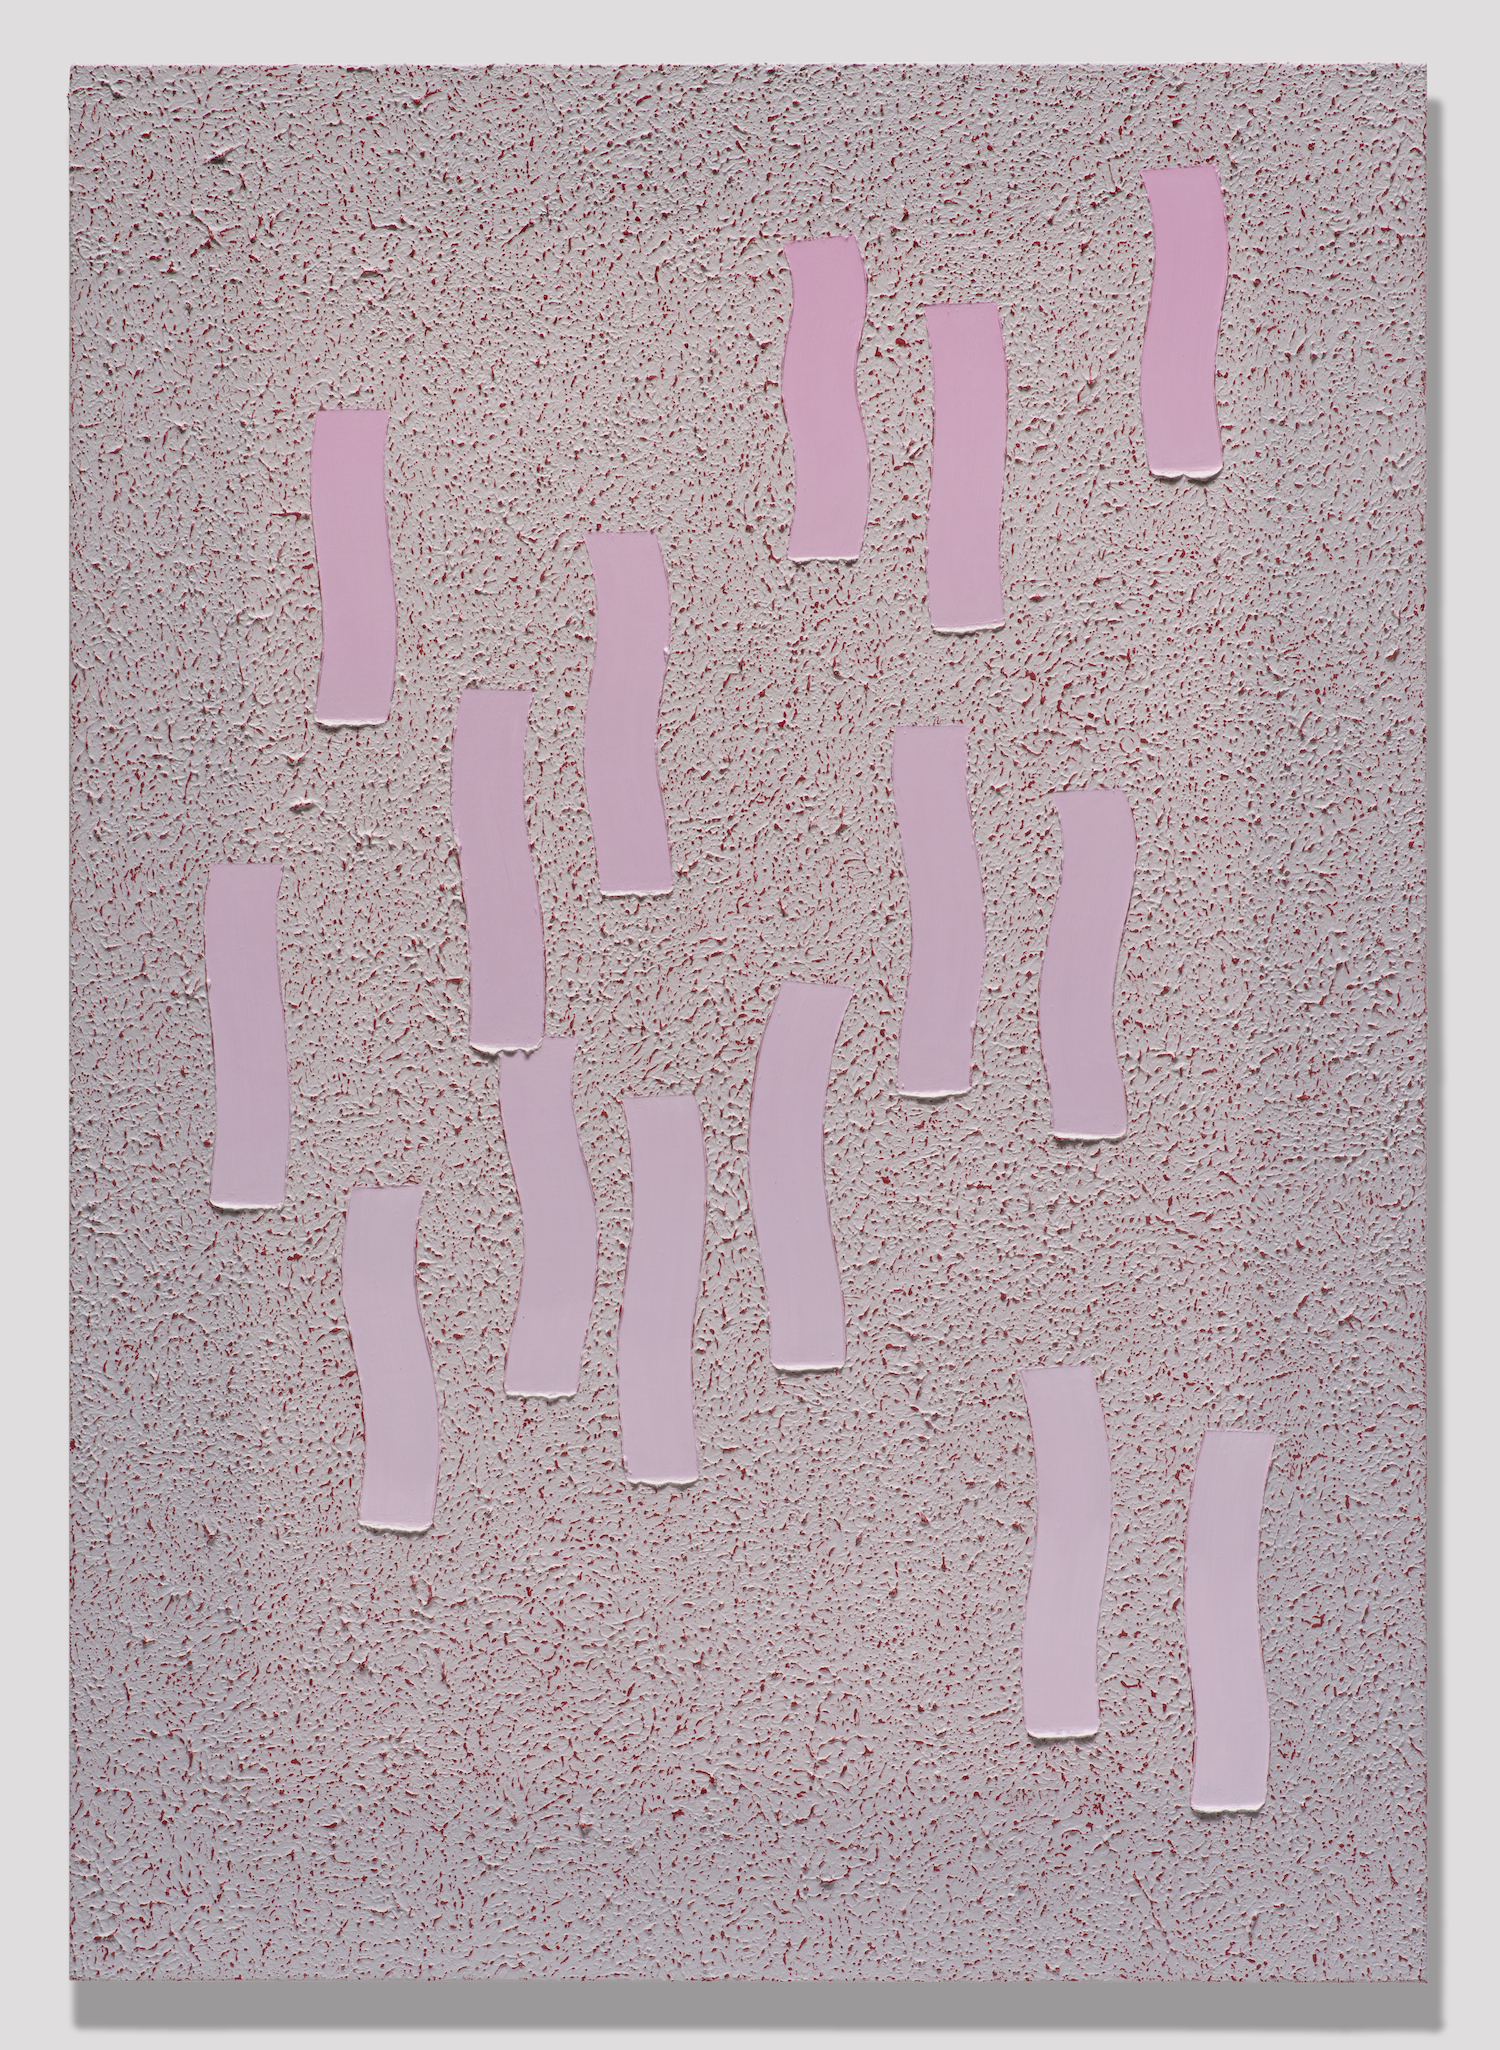 Alex Olson  Disperse  2013 Oil and modeling paste on linen 41h x 29w in AO144